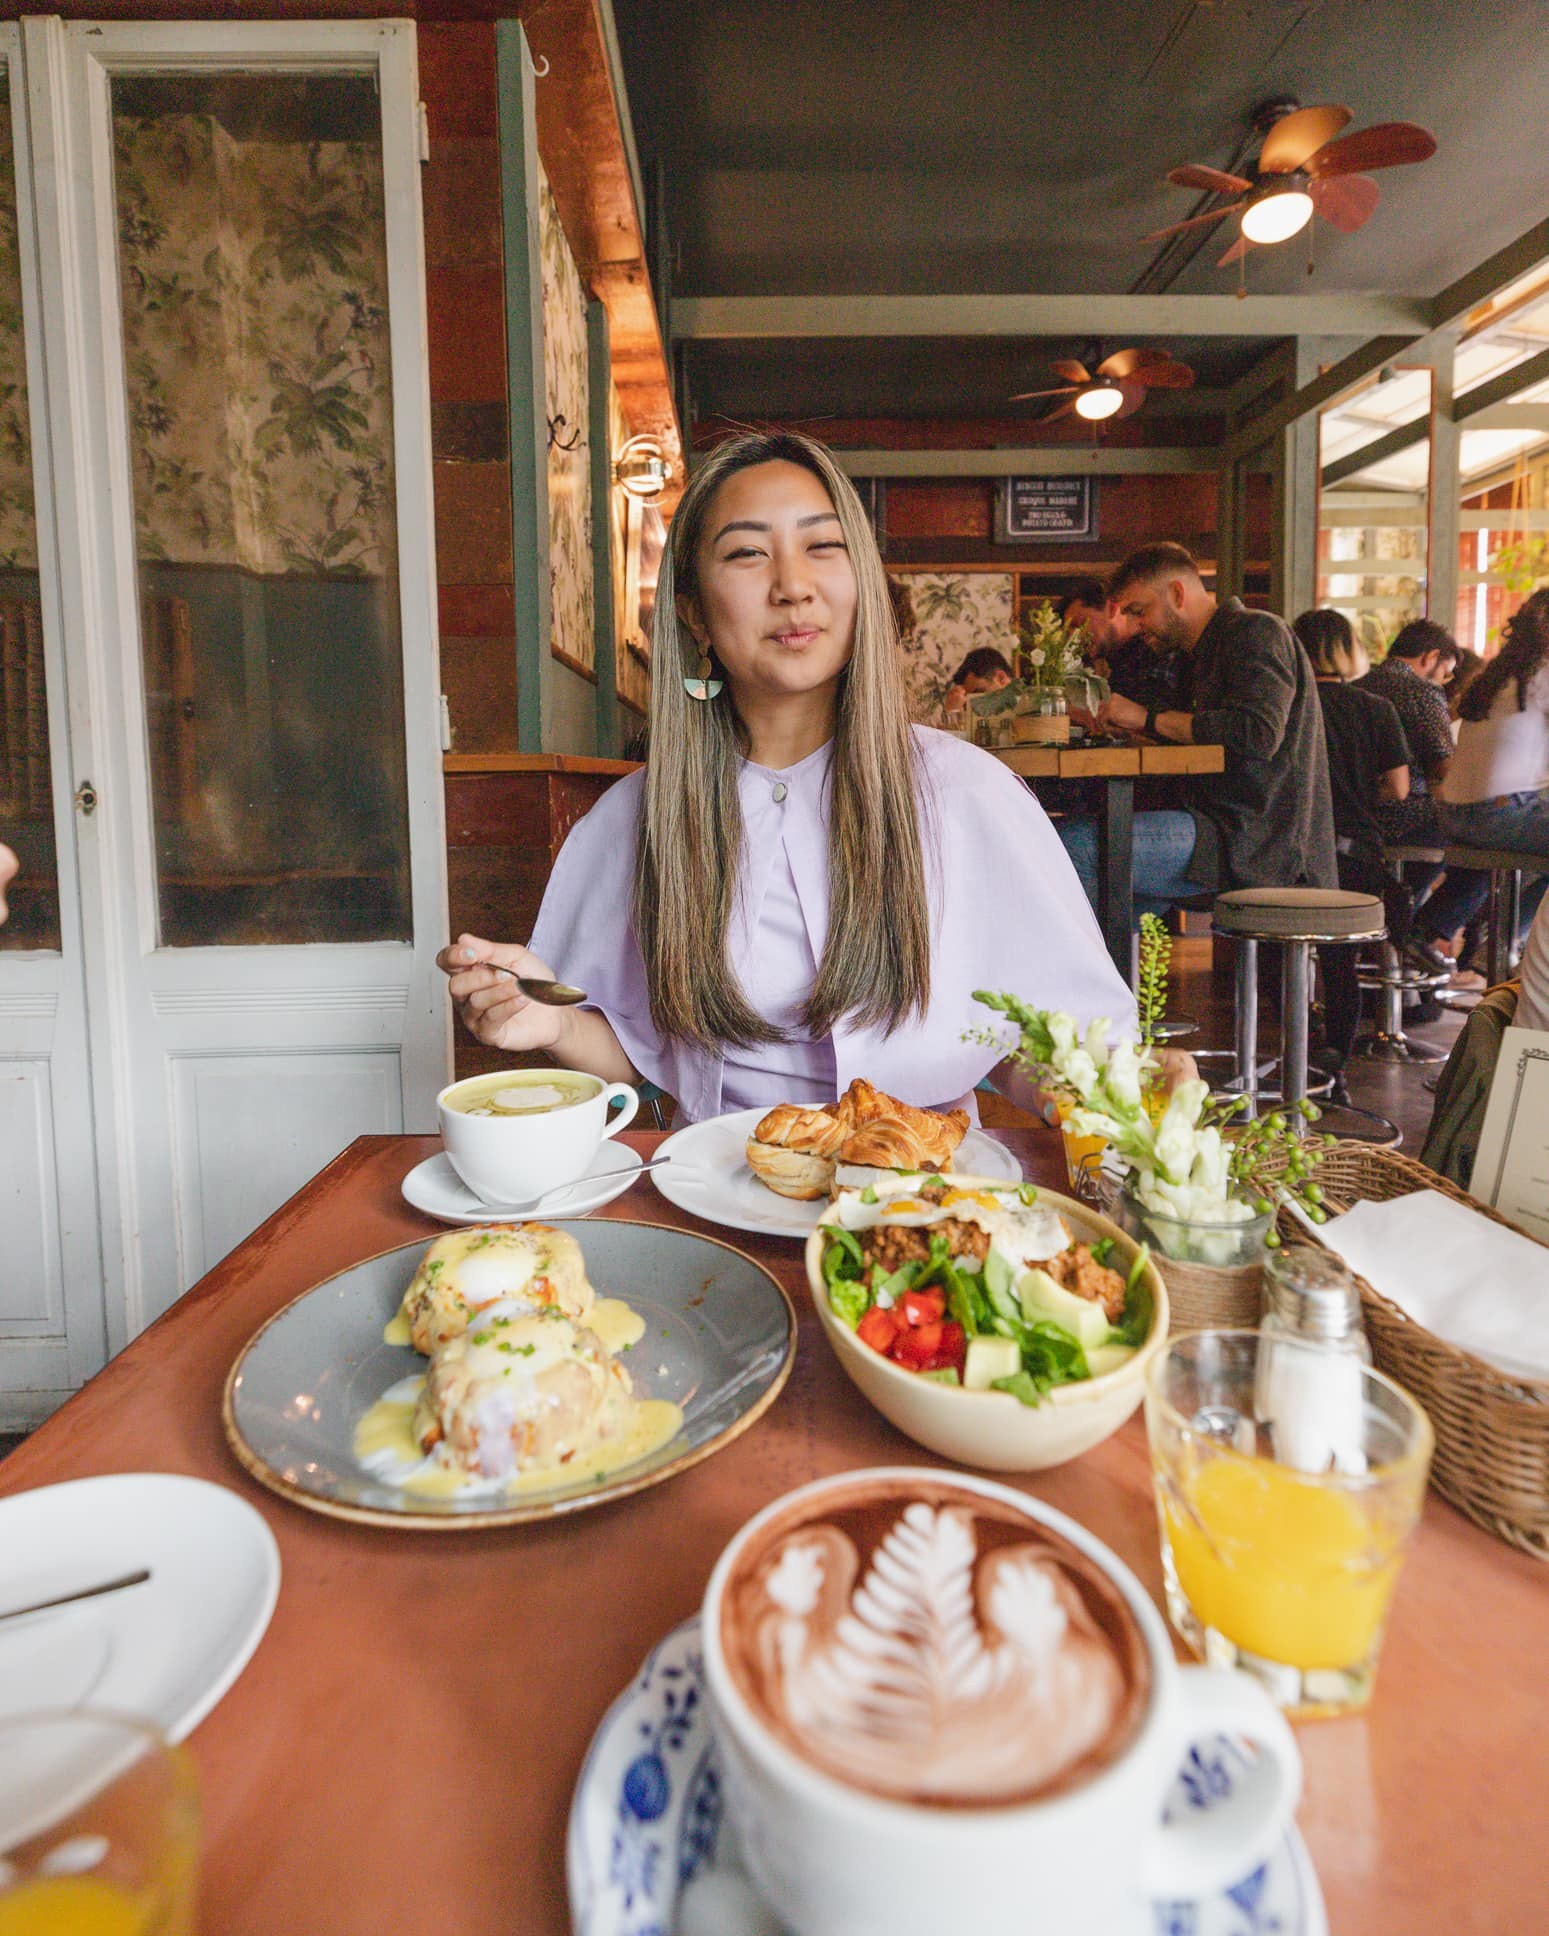 House of Small Wonder should be on top of your 'where to eat in Berlin' list